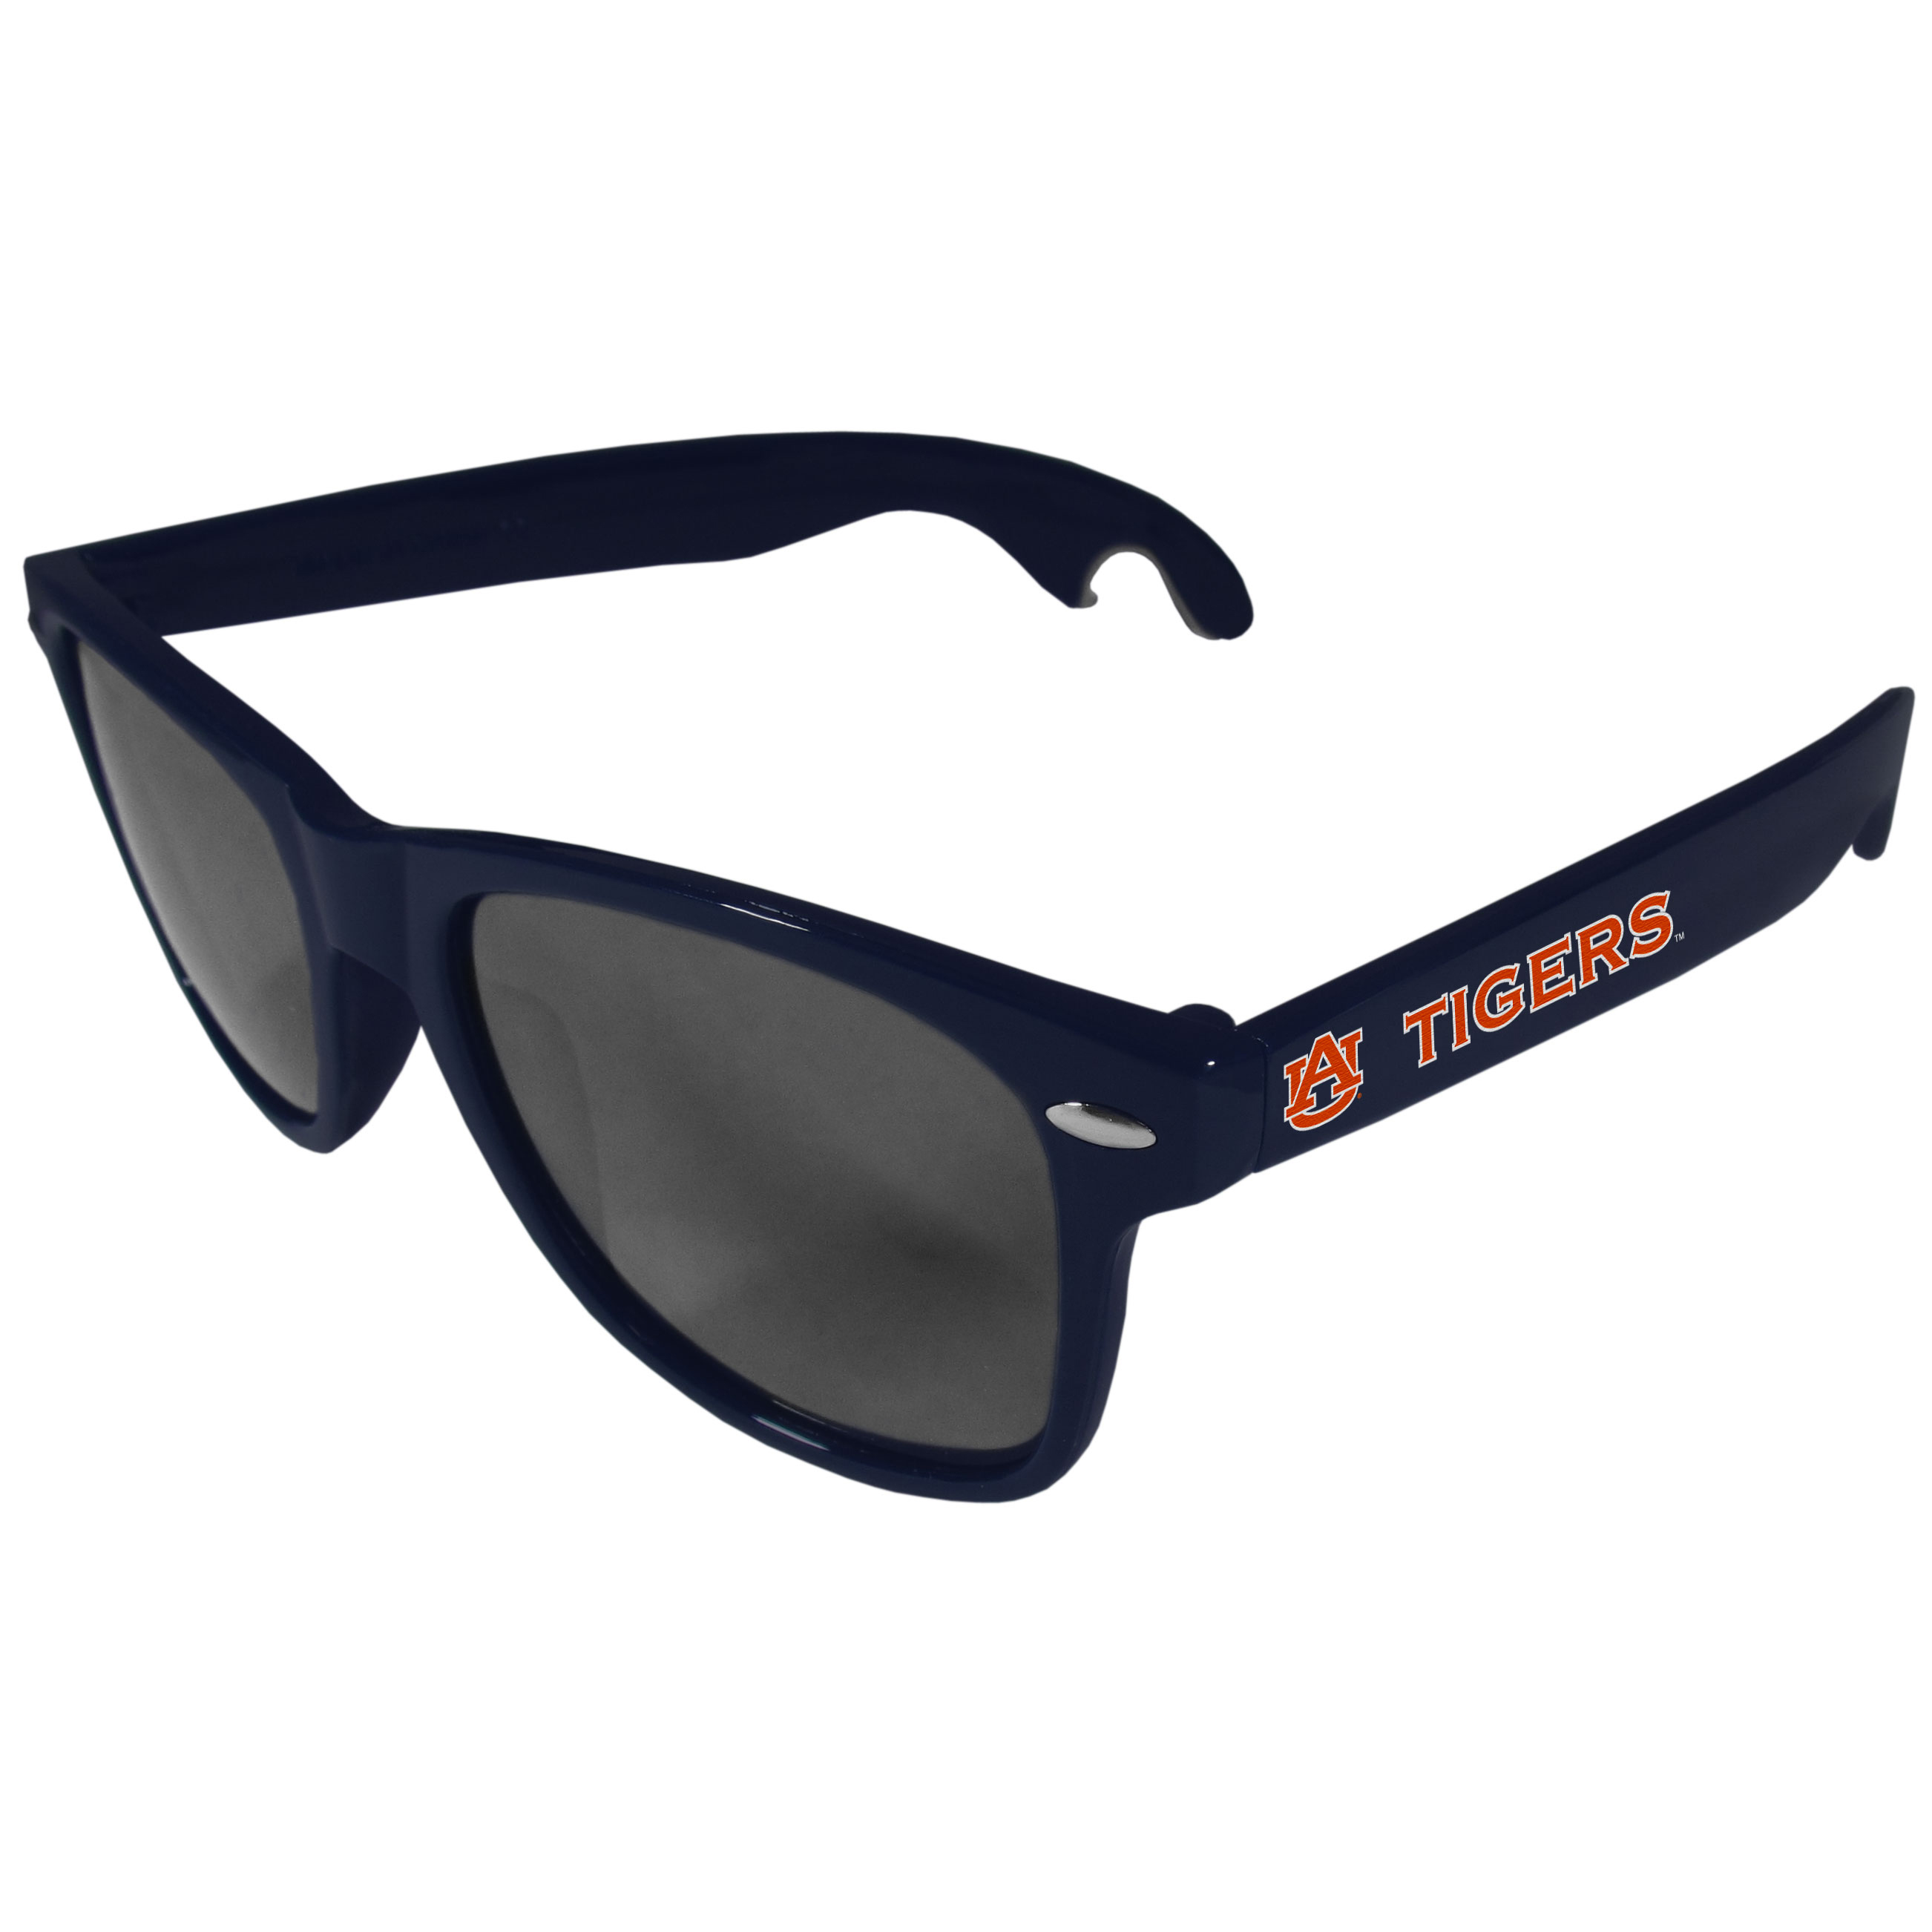 Auburn Tigers Beachfarer Bottle Opener Sunglasses, Dark Blue - Seriously, these sunglasses open bottles! Keep the party going with these amazing Auburn Tigers bottle opener sunglasses. The stylish retro frames feature team designs on the arms and functional bottle openers on the end of the arms. Whether you are at the beach or having a backyard BBQ on game day, these shades will keep your eyes protected with 100% UVA/UVB protection and keep you hydrated with the handy bottle opener arms.